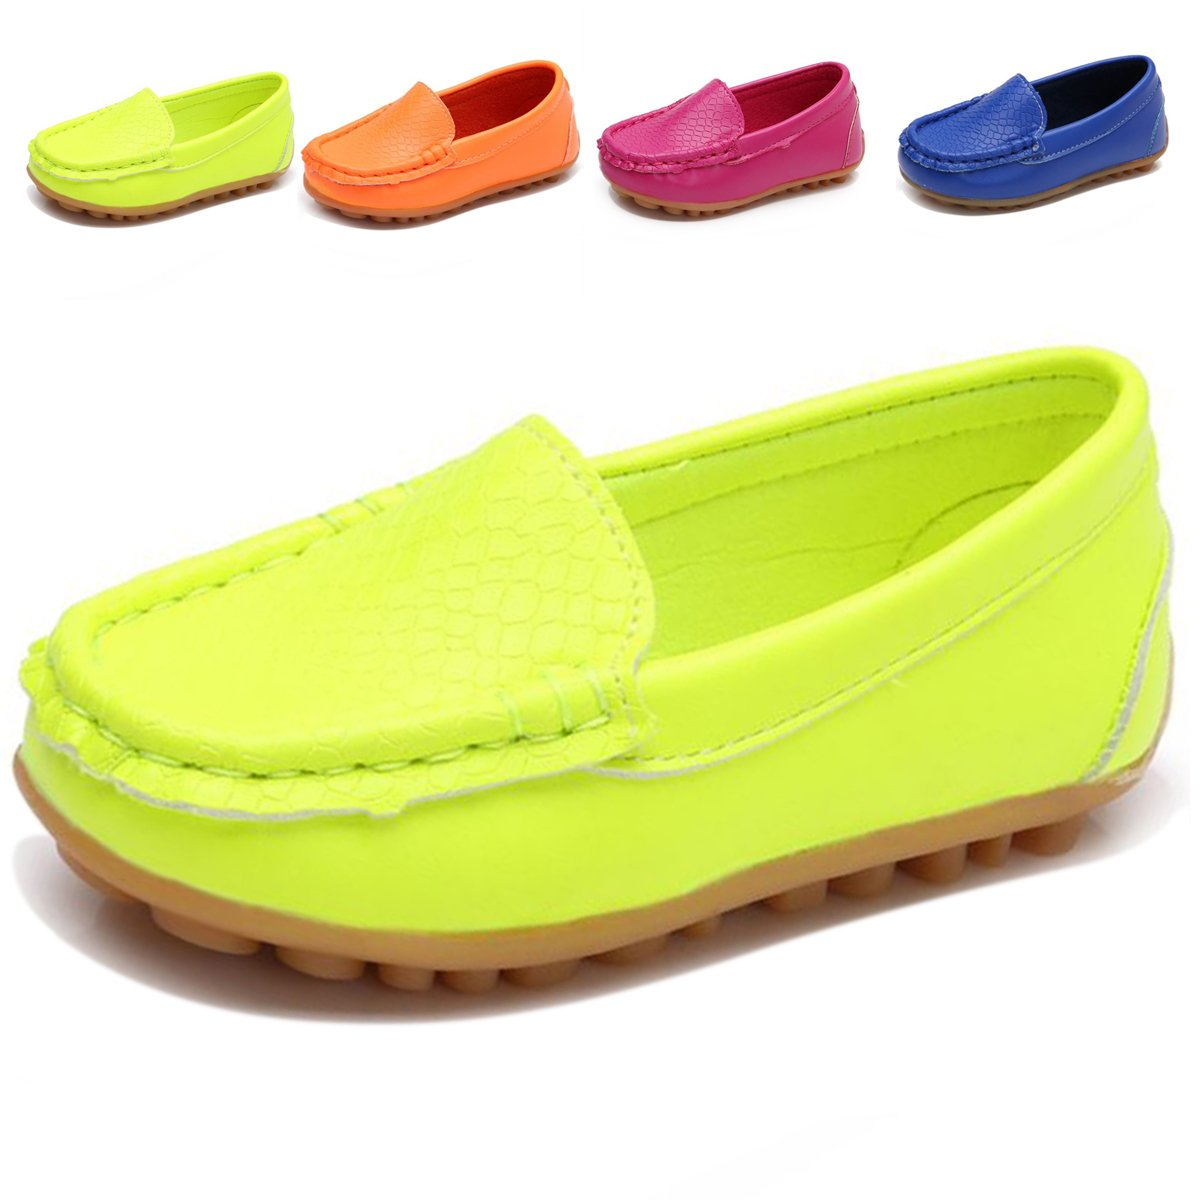 L-RUN Boys Girls Leather Loafer Shoes Dress Boat Shoes Green 10 M US Toddler